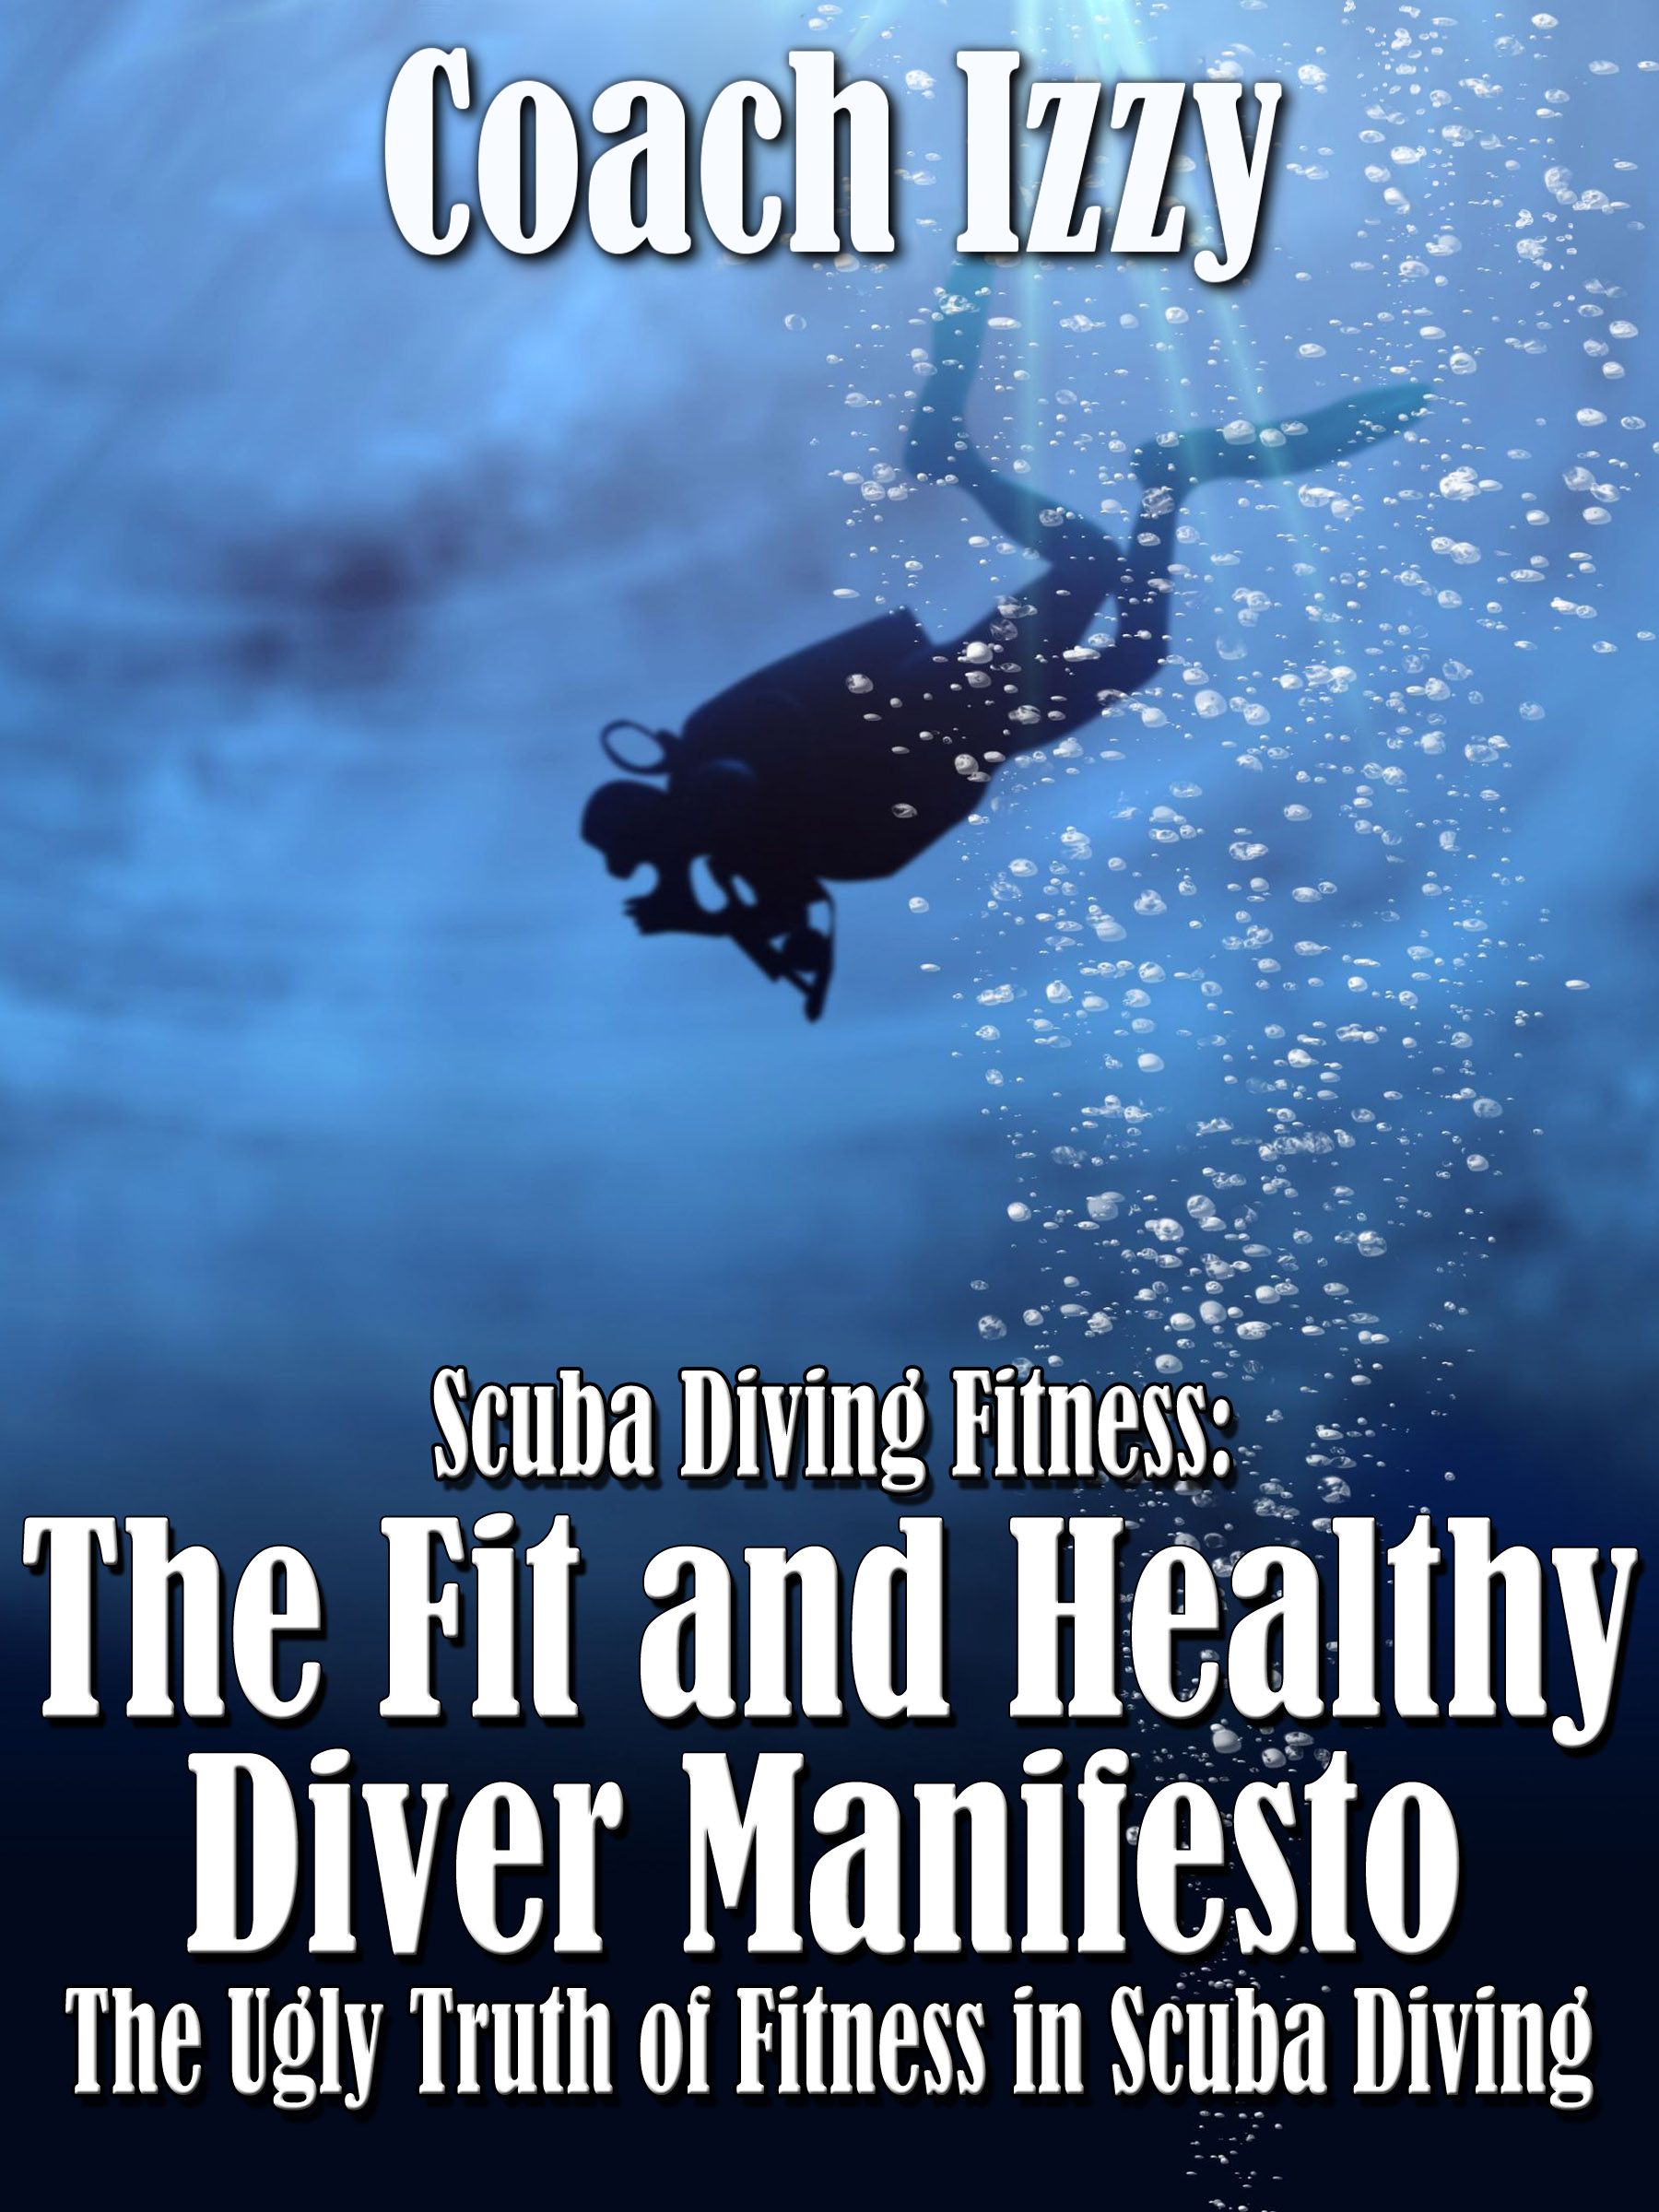 Scuba Diving Fitness: The Fit and Healthy Diver Manifesto